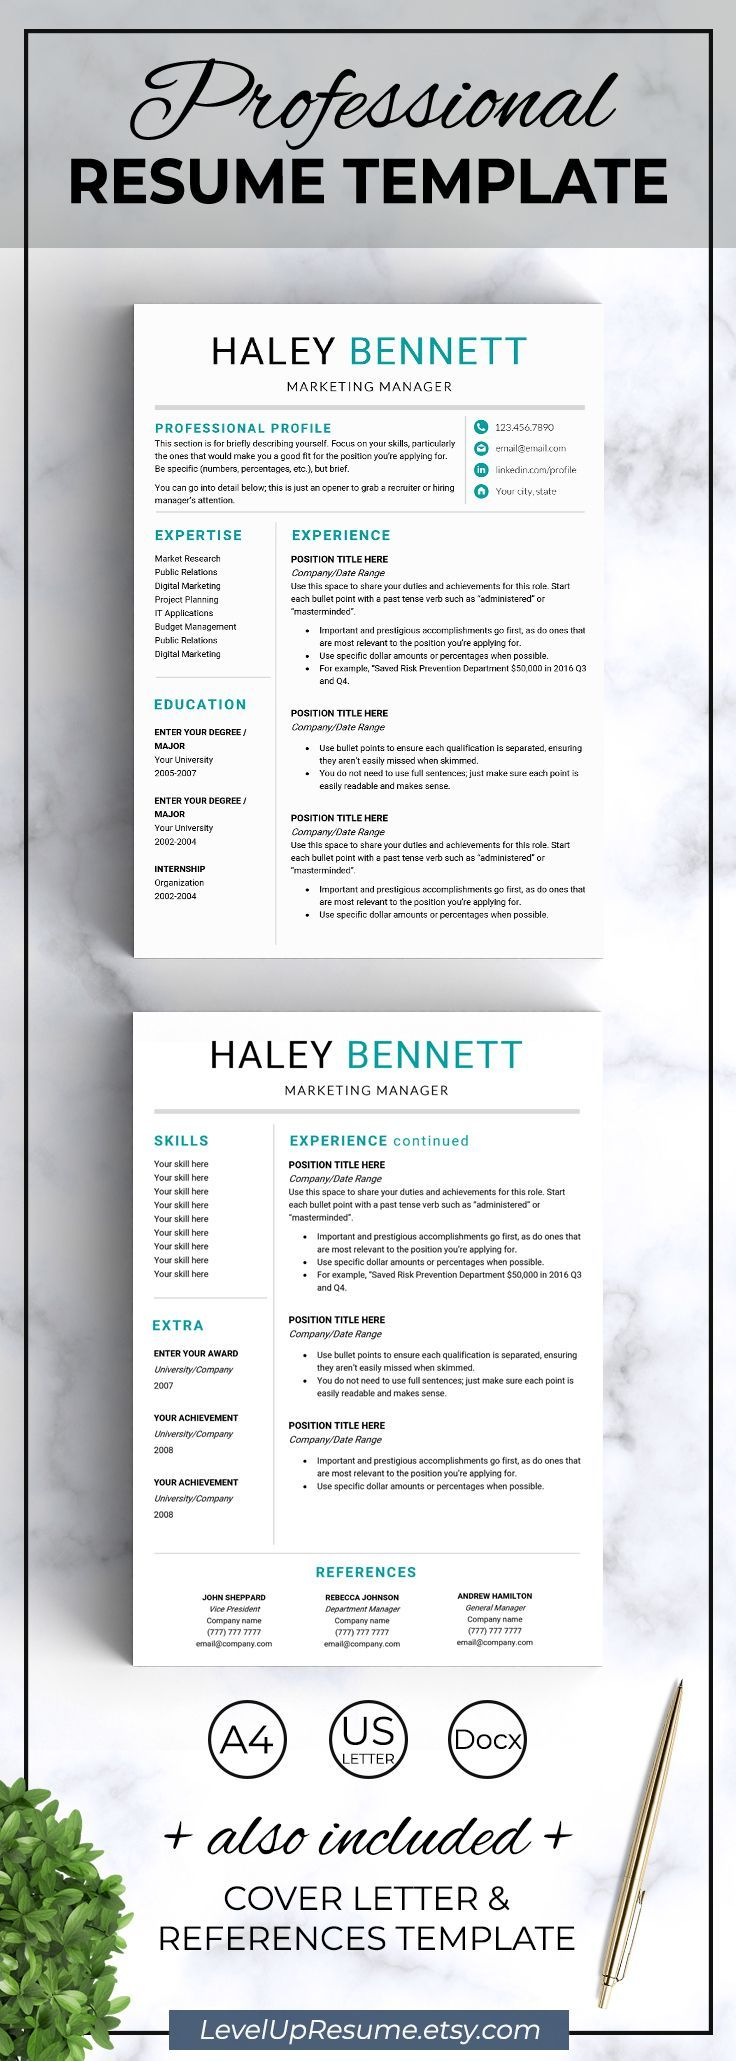 Bullet Point Resume Gorgeous 147 Best Build Your Resume Images On Pinterest  Resume Tips Resume .